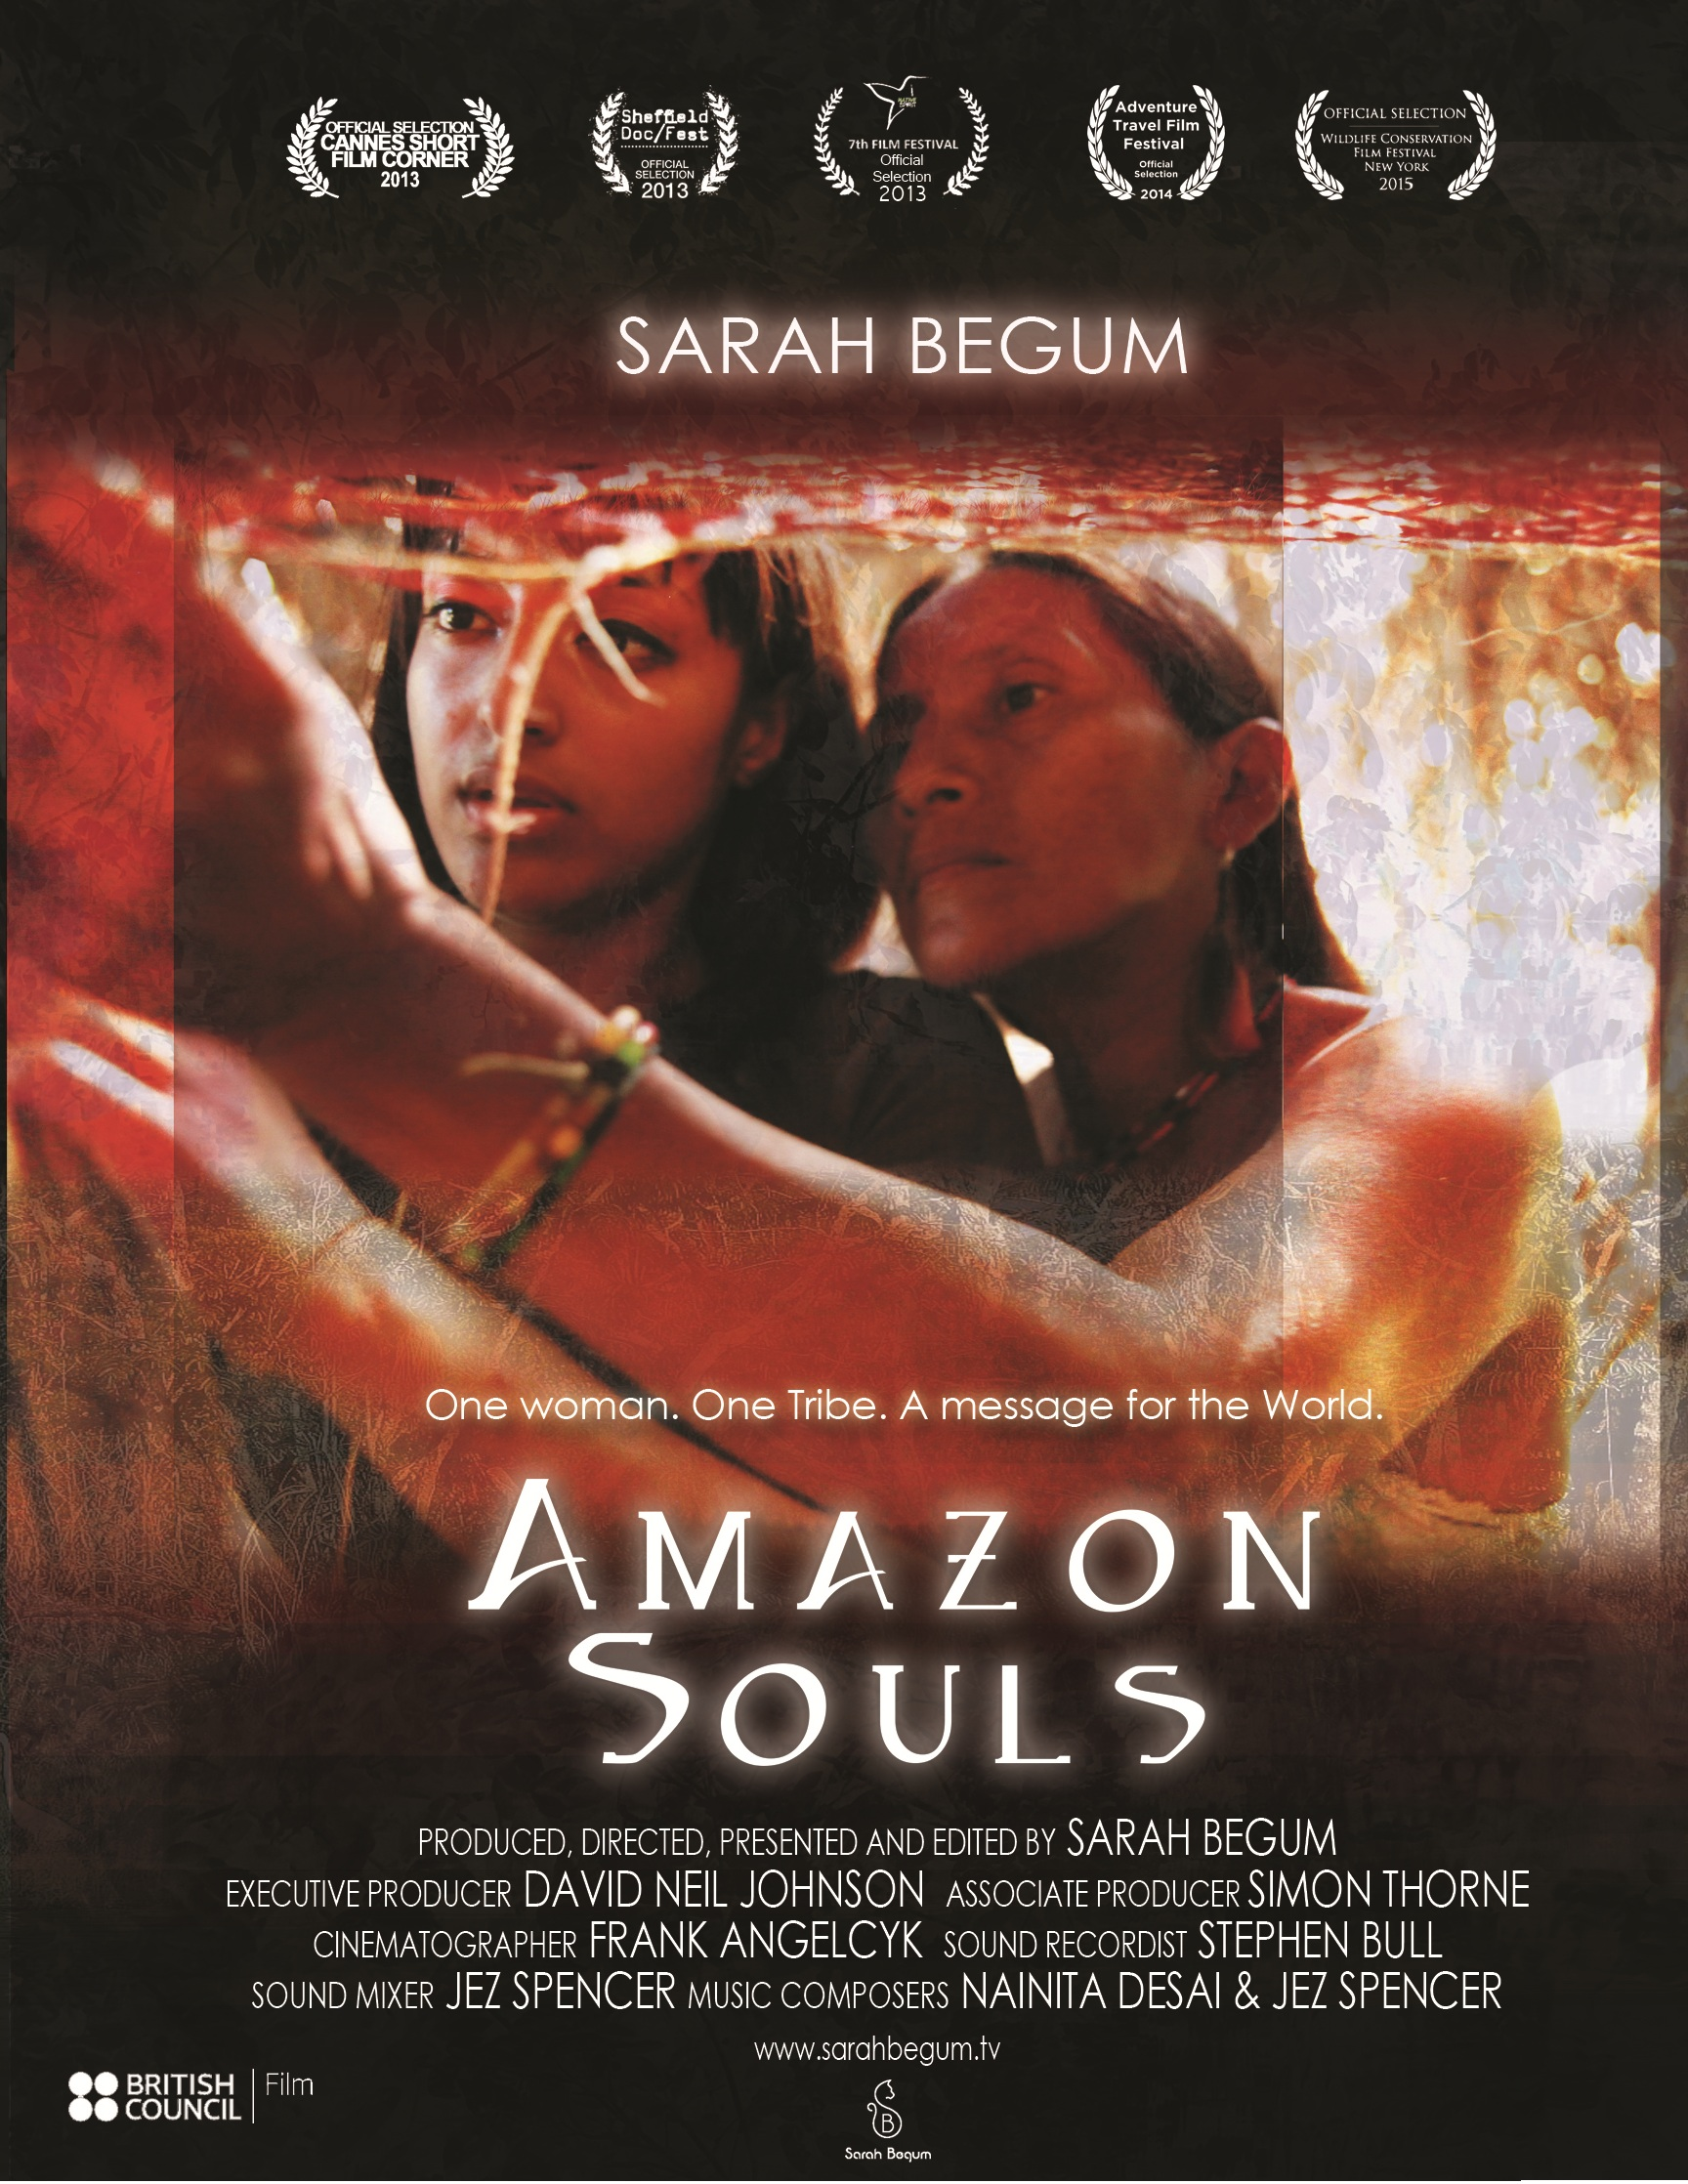 100 Pictures of Amazon Souls 2013 Full